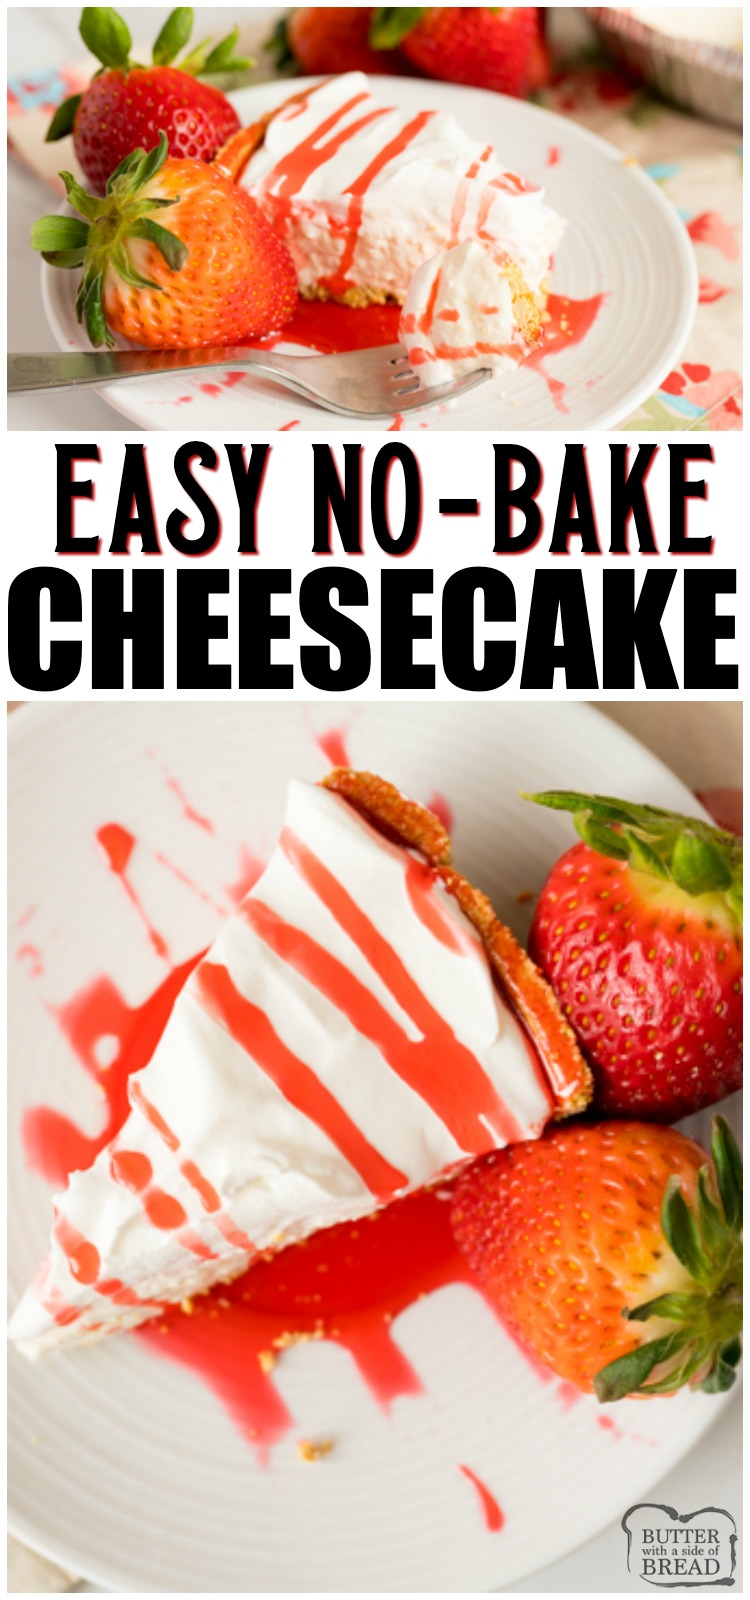 Easy No Bake Cheesecake with Strawberries is an easy 5 ingredient dessert that takes no time to make! Pudding mix, cream cheese and whipped topping make the smooth, no-bake cheesecake filling. Topped with fresh strawberries, it's the perfect Spring dessert.